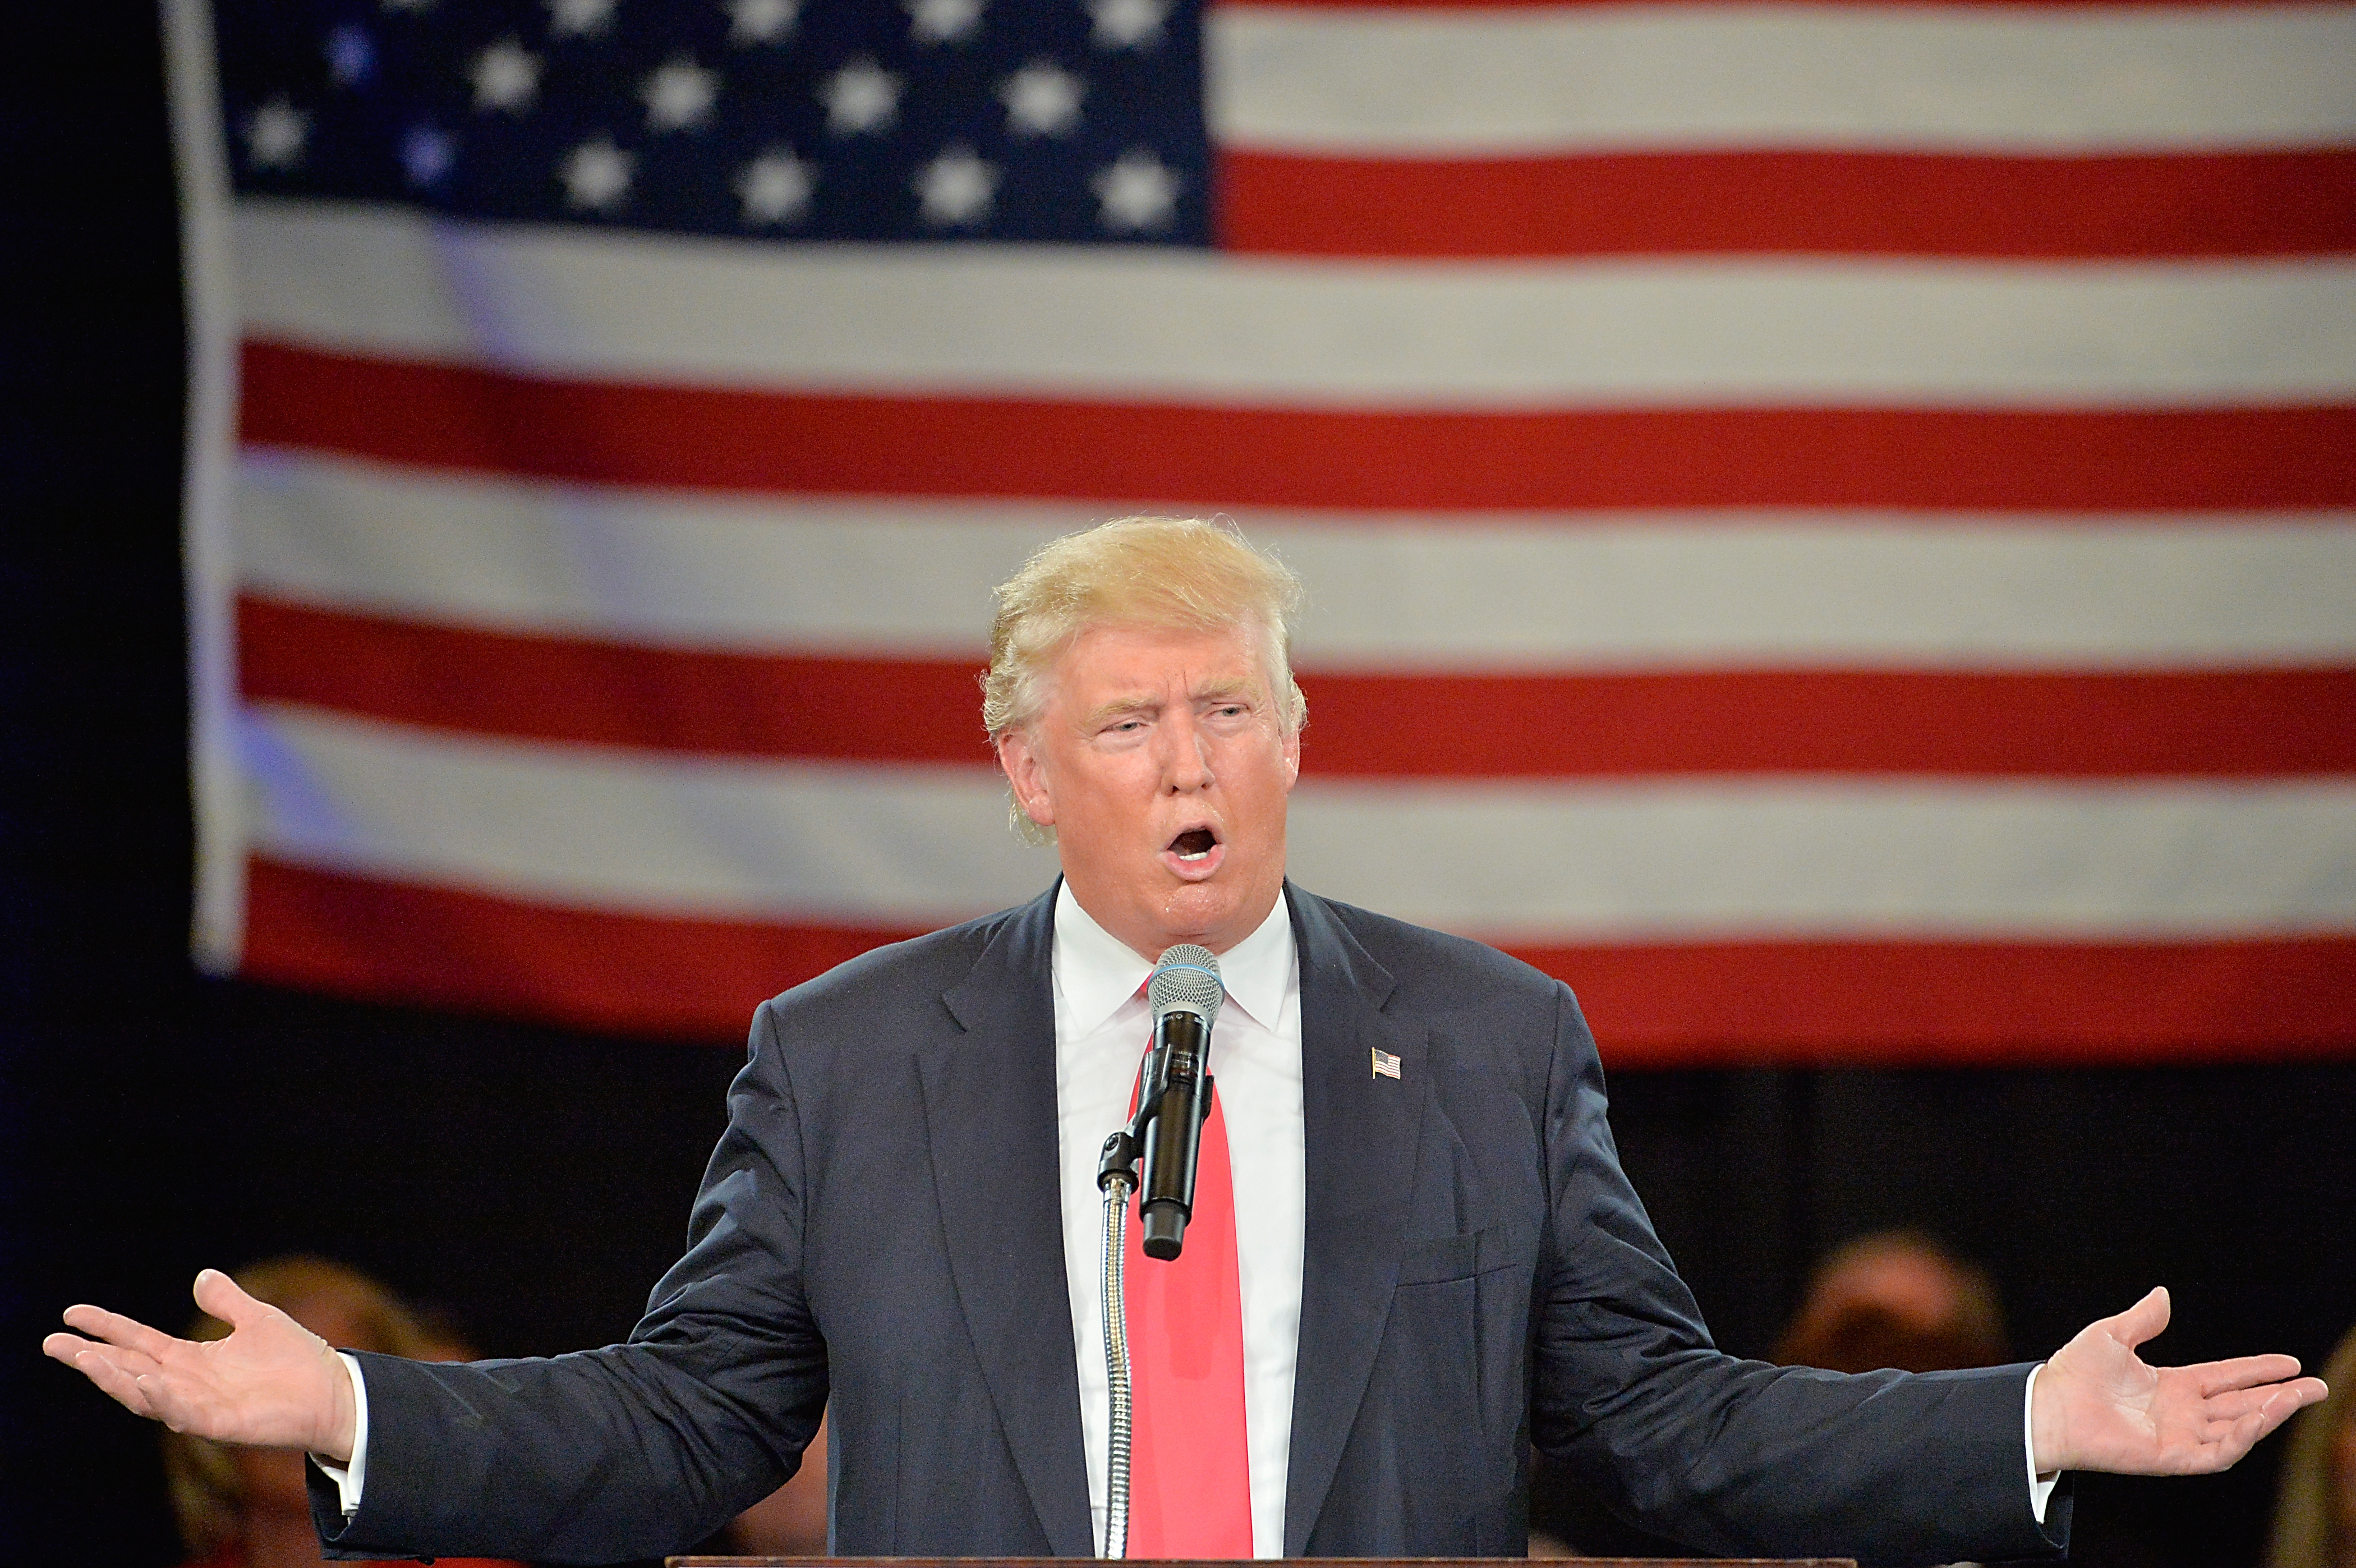 Republican presidential candidate Donald Trump address an audience at the The Hotel Roanoke & Conference Center on July 25, 2016 in Roanoke, Virginia.  Trump is campaigning with a bump in the polls following the Republican National Convention where he accepted the party's nomination.  (Photo by Sara D. Davis/Getty Images)